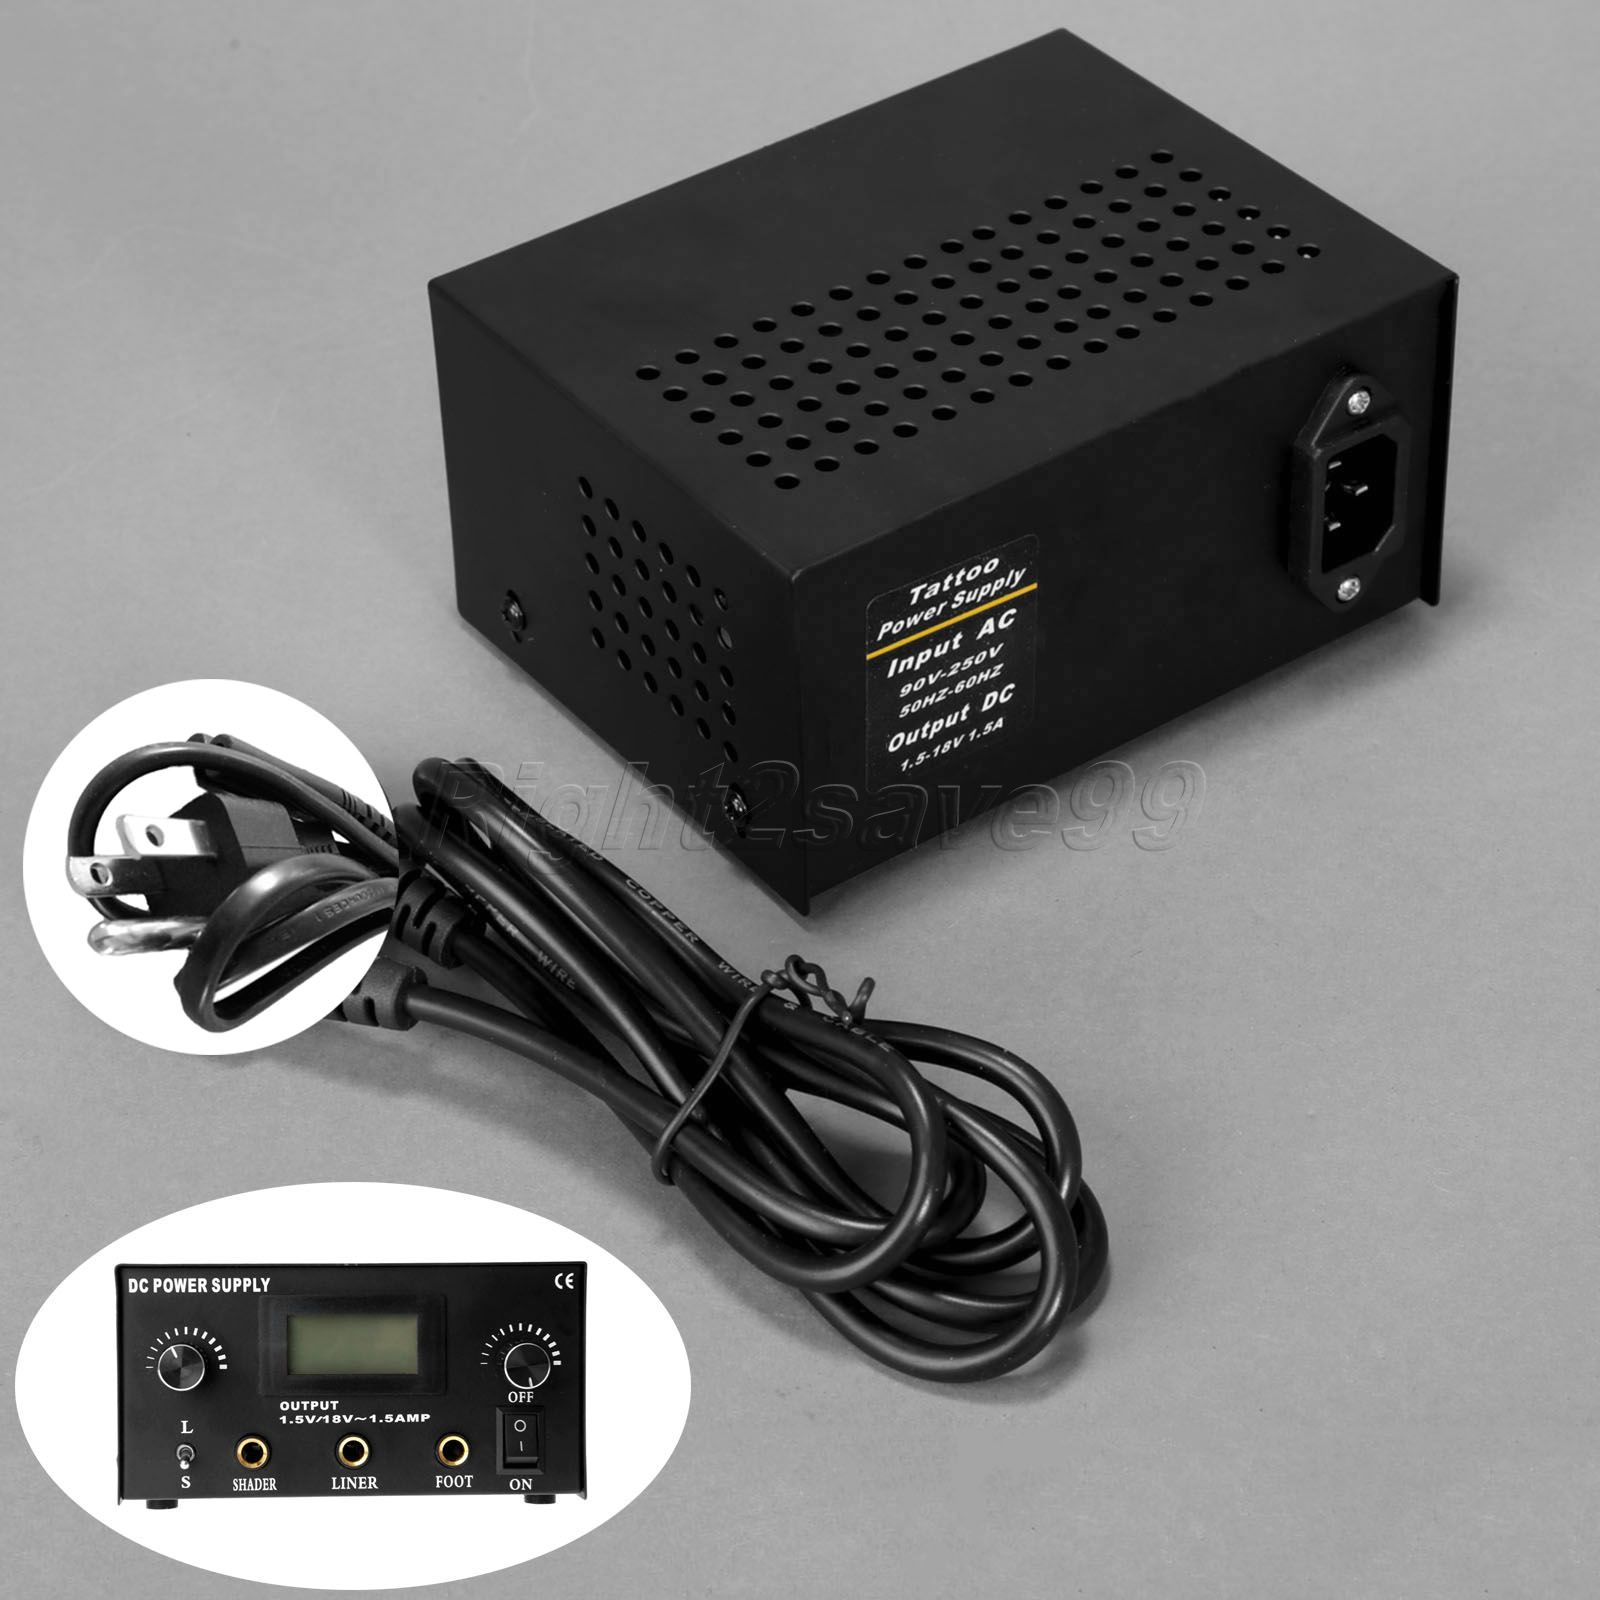 2017 High Quality Digital Dual Cast Iron Tattoo Power Supply Free shipping Tattoo Machine Gun Power Supply with US plug high quality professional mini power supply dual output power supply for tattoo machine tattoo gun free shipping supply